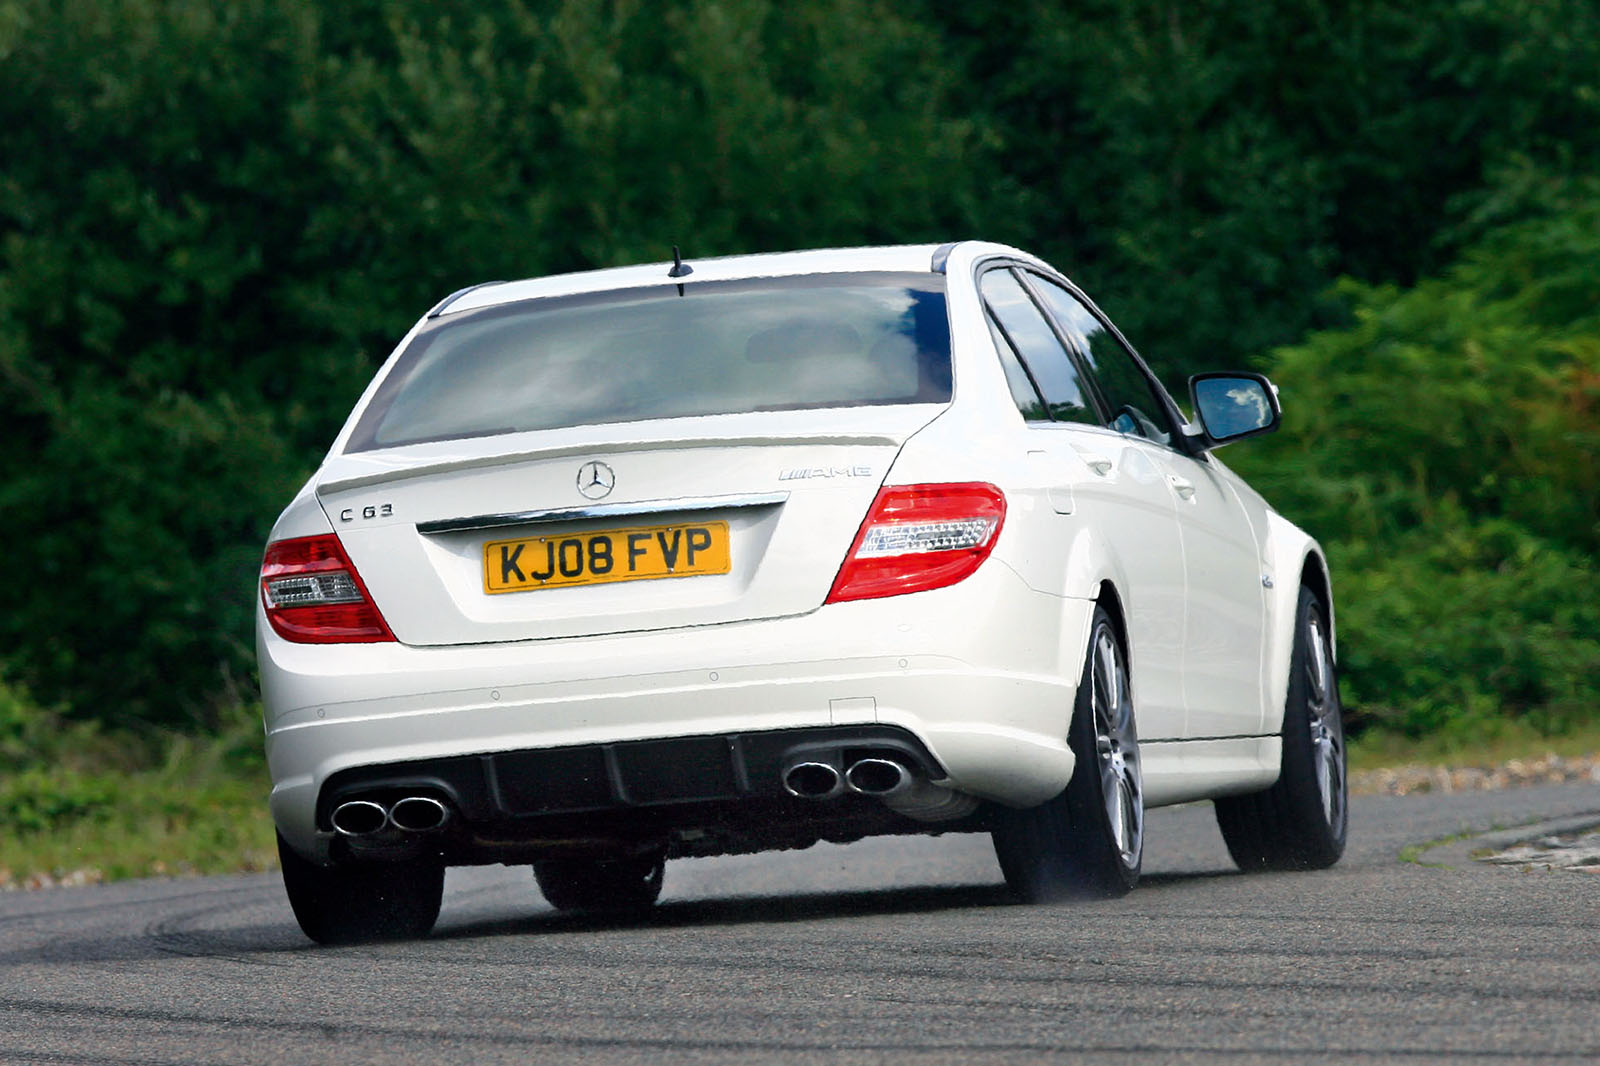 Used car buying guide: Mercedes-AMG C 63 (2008-2015) | Autocar